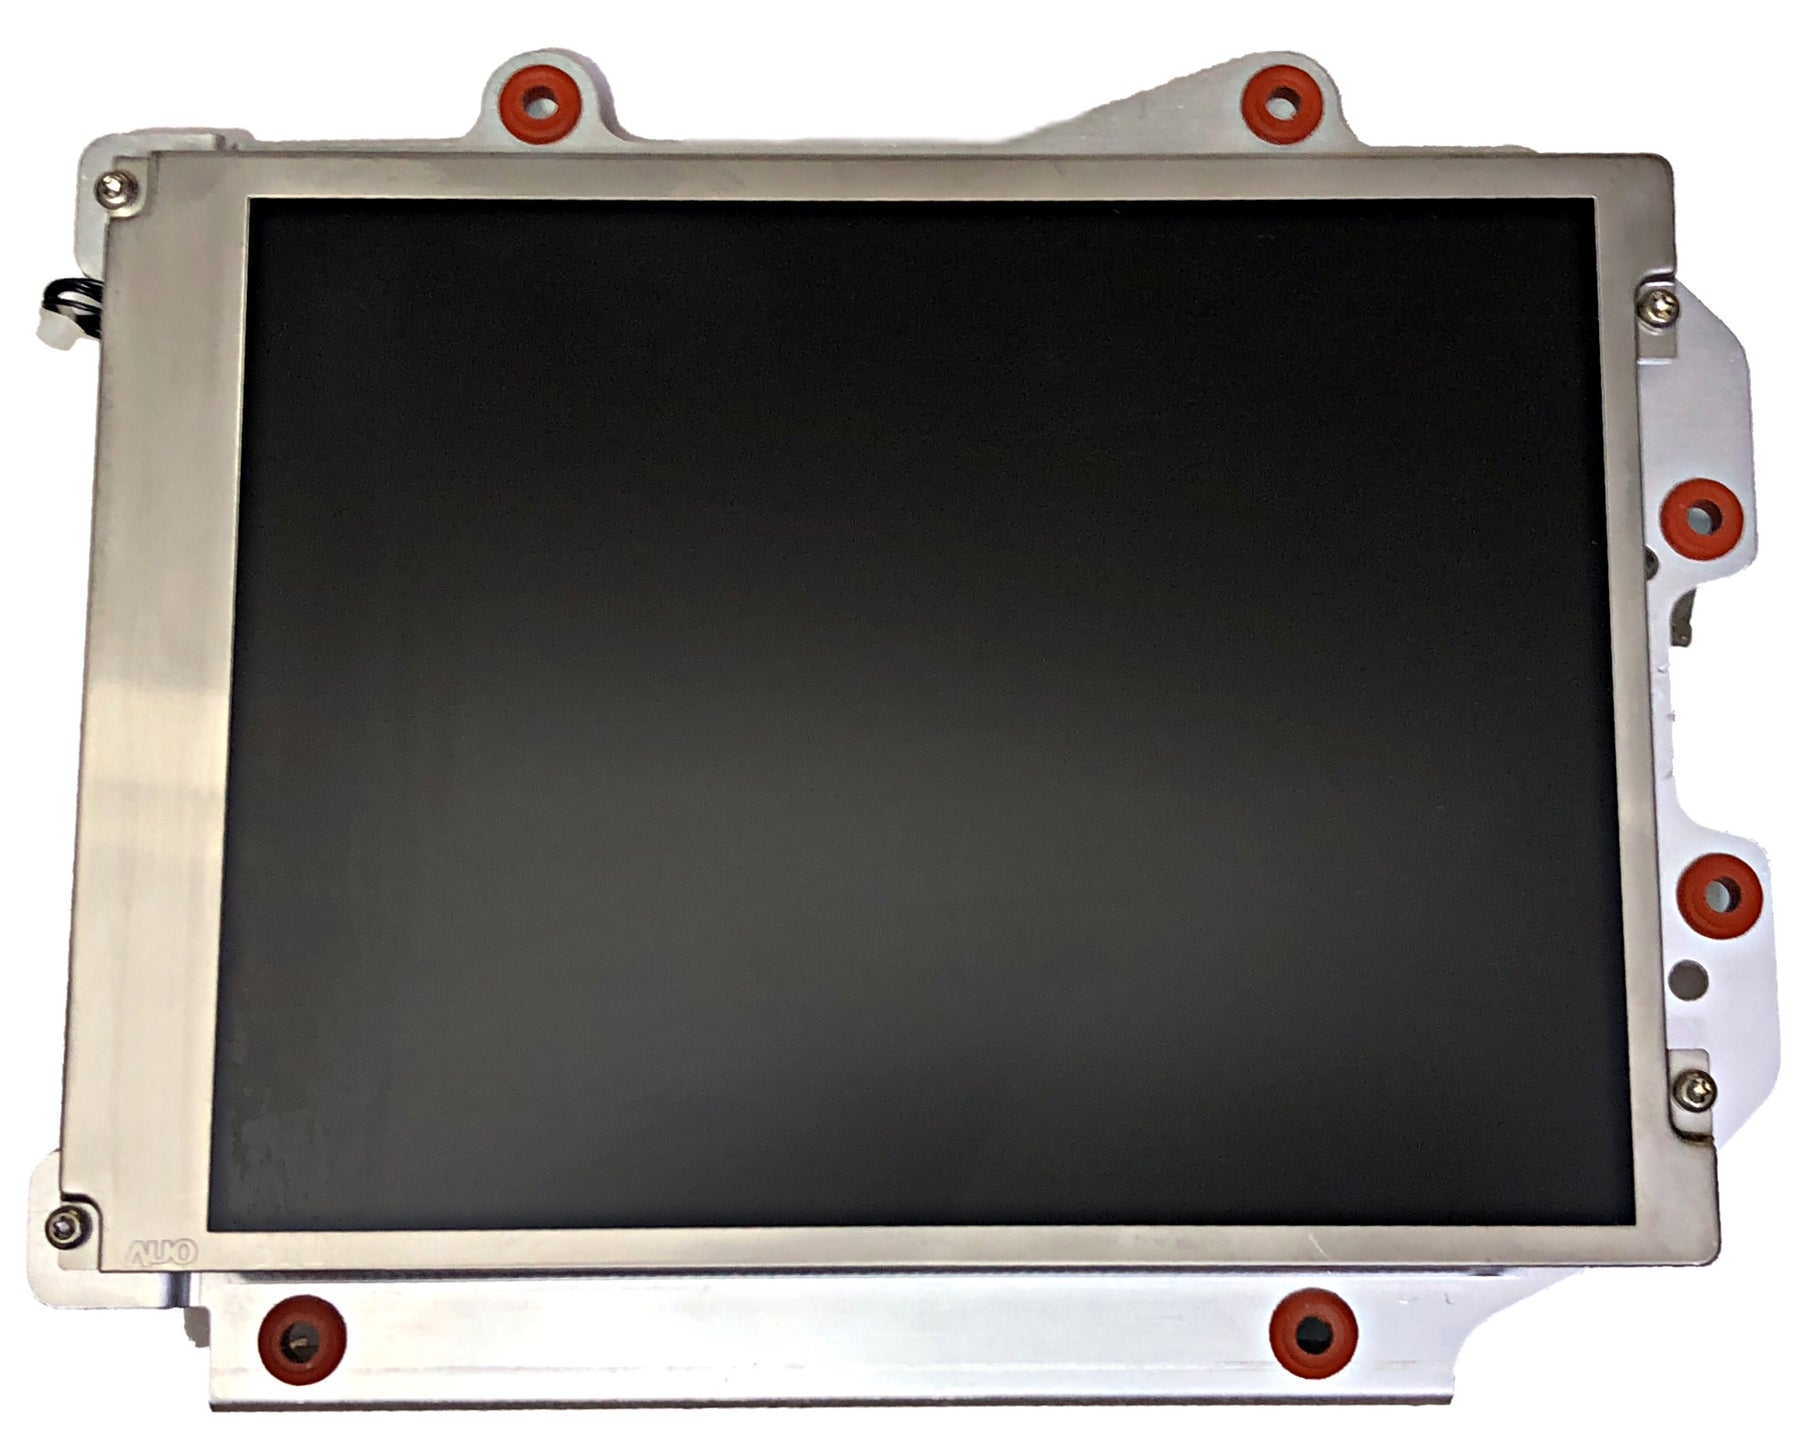 Philips SureSigns VS / VM Series Monitor LCD Display Assembly - Even Biomedical